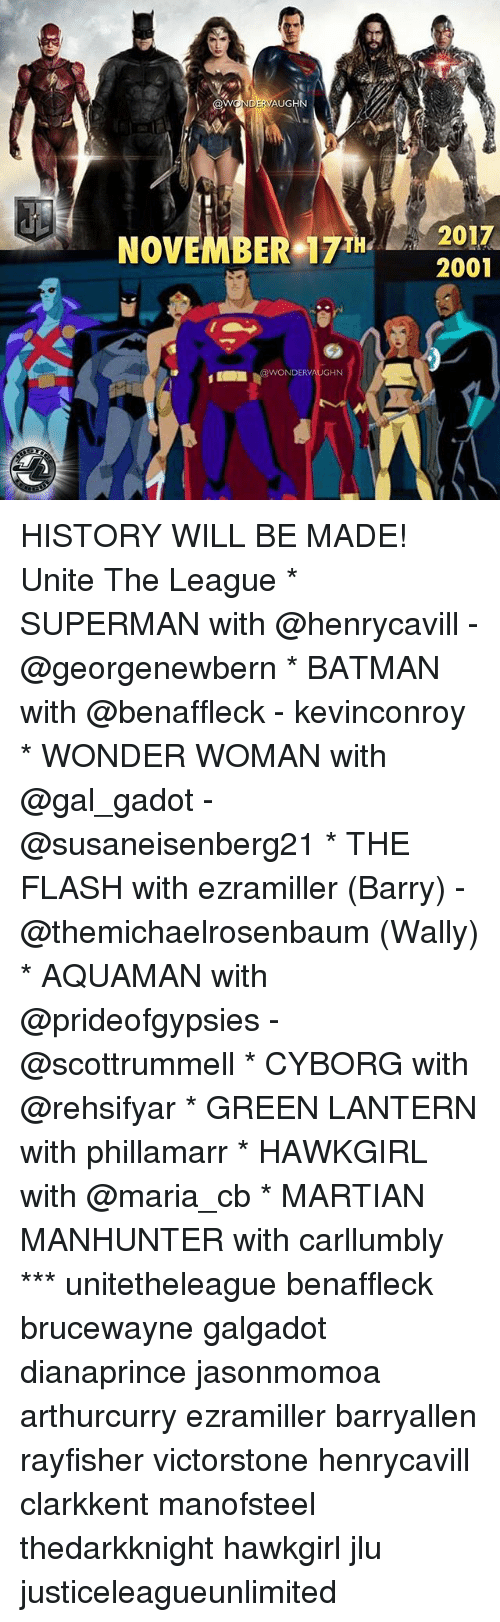 Green Lantern: AUGH  NOVEMBER 7T2017  2001  NDERV HISTORY WILL BE MADE! Unite The League * SUPERMAN with @henrycavill - @georgenewbern * BATMAN with @benaffleck - kevinconroy * WONDER WOMAN with @gal_gadot - @susaneisenberg21 * THE FLASH with ezramiller (Barry) - @themichaelrosenbaum (Wally) * AQUAMAN with @prideofgypsies - @scottrummell * CYBORG with @rehsifyar * GREEN LANTERN with phillamarr * HAWKGIRL with @maria_cb * MARTIAN MANHUNTER with carllumbly *** unitetheleague benaffleck brucewayne galgadot dianaprince jasonmomoa arthurcurry ezramiller barryallen rayfisher victorstone henrycavill clarkkent manofsteel thedarkknight hawkgirl jlu justiceleagueunlimited